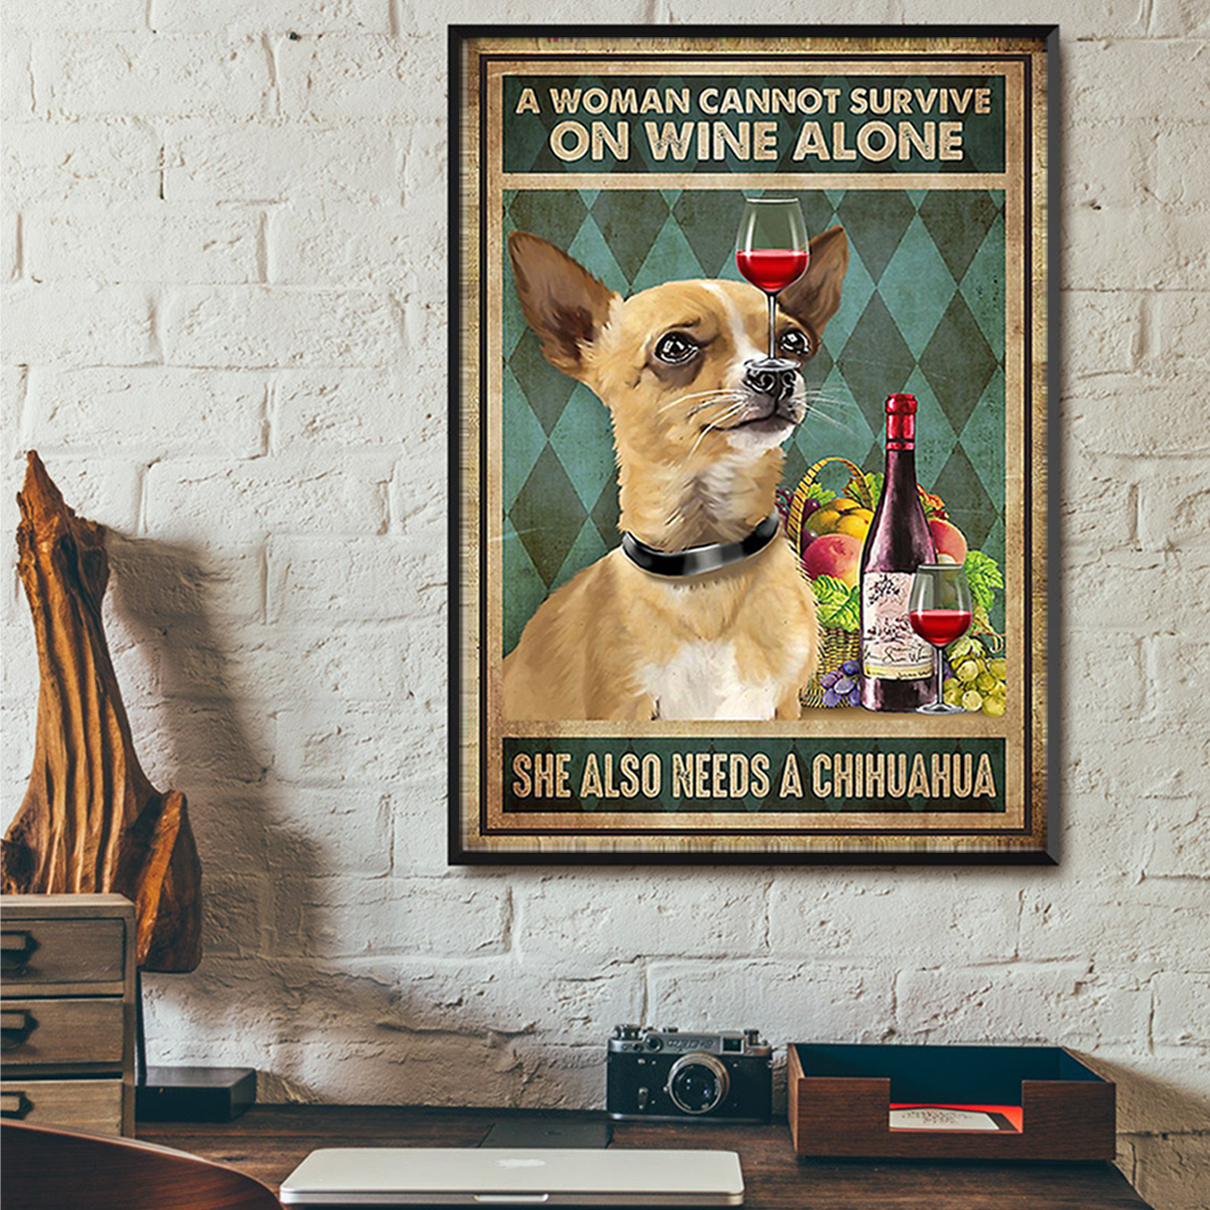 A woman cannot survive on wine alone she also needs a chihuahua poster A3